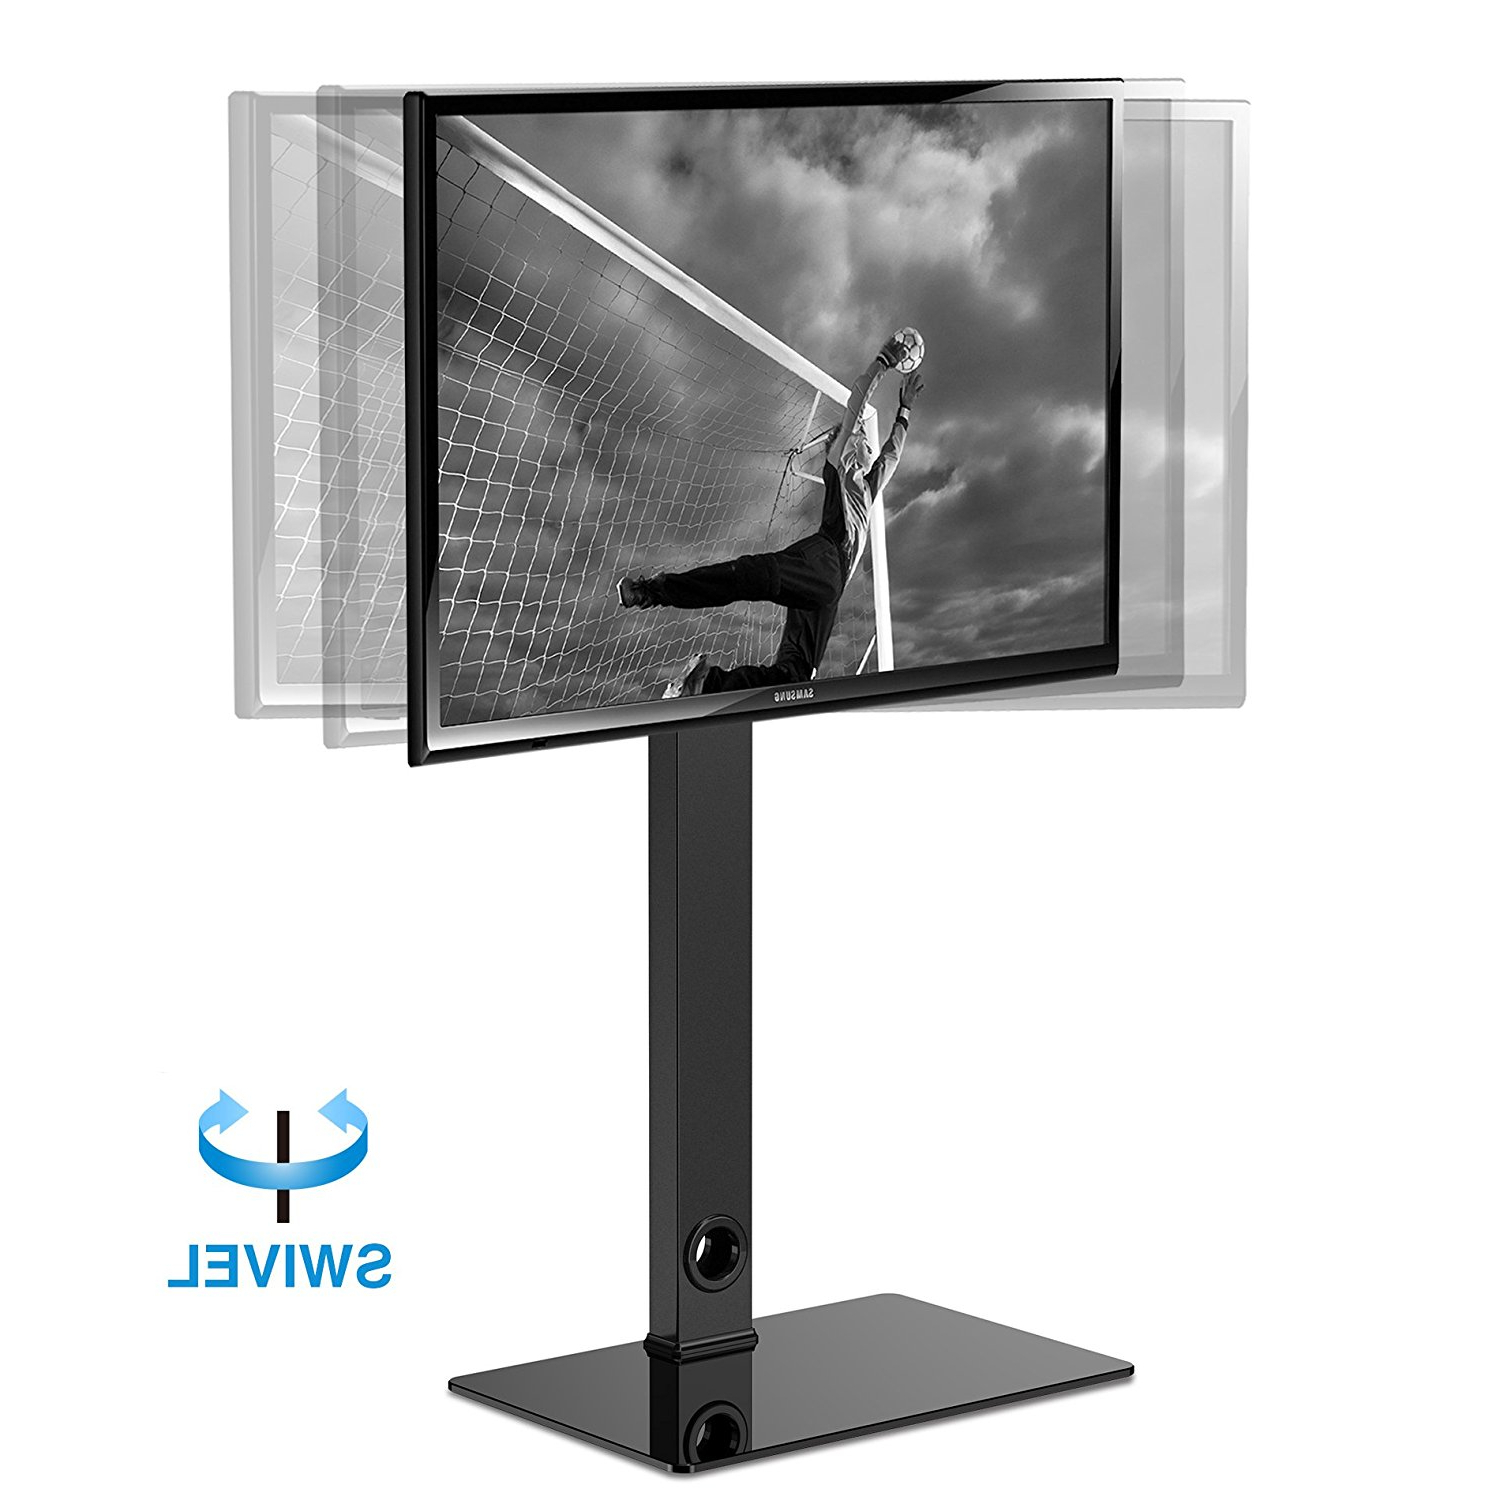 Tv Stands Swivel Mount For Favorite Fitueyes Tv Stand With Swivel Mount For Up To 55 Inch Samsung Vizio (View 13 of 20)